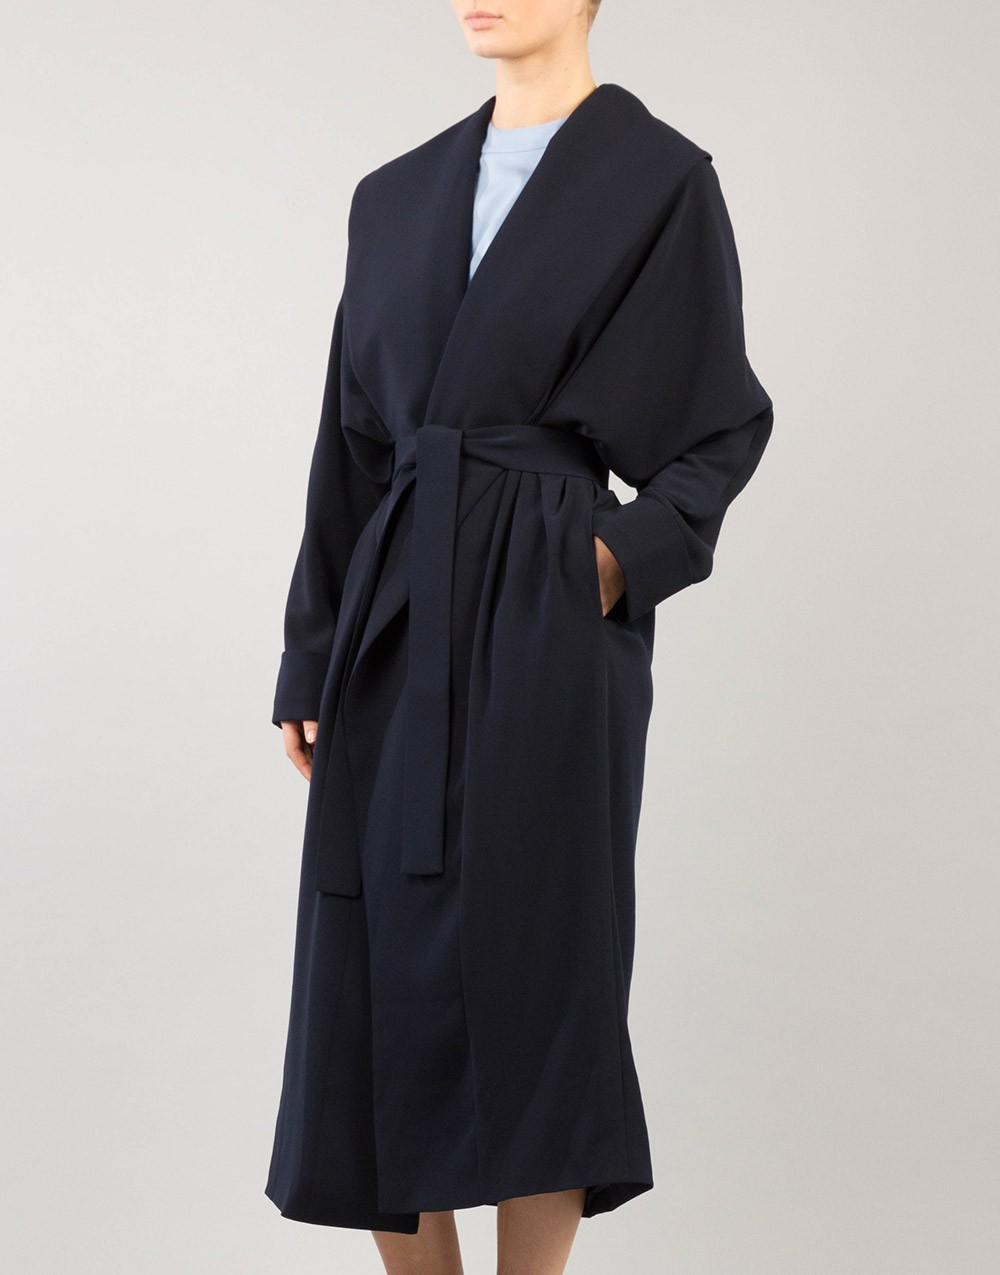 FoA. London Coat